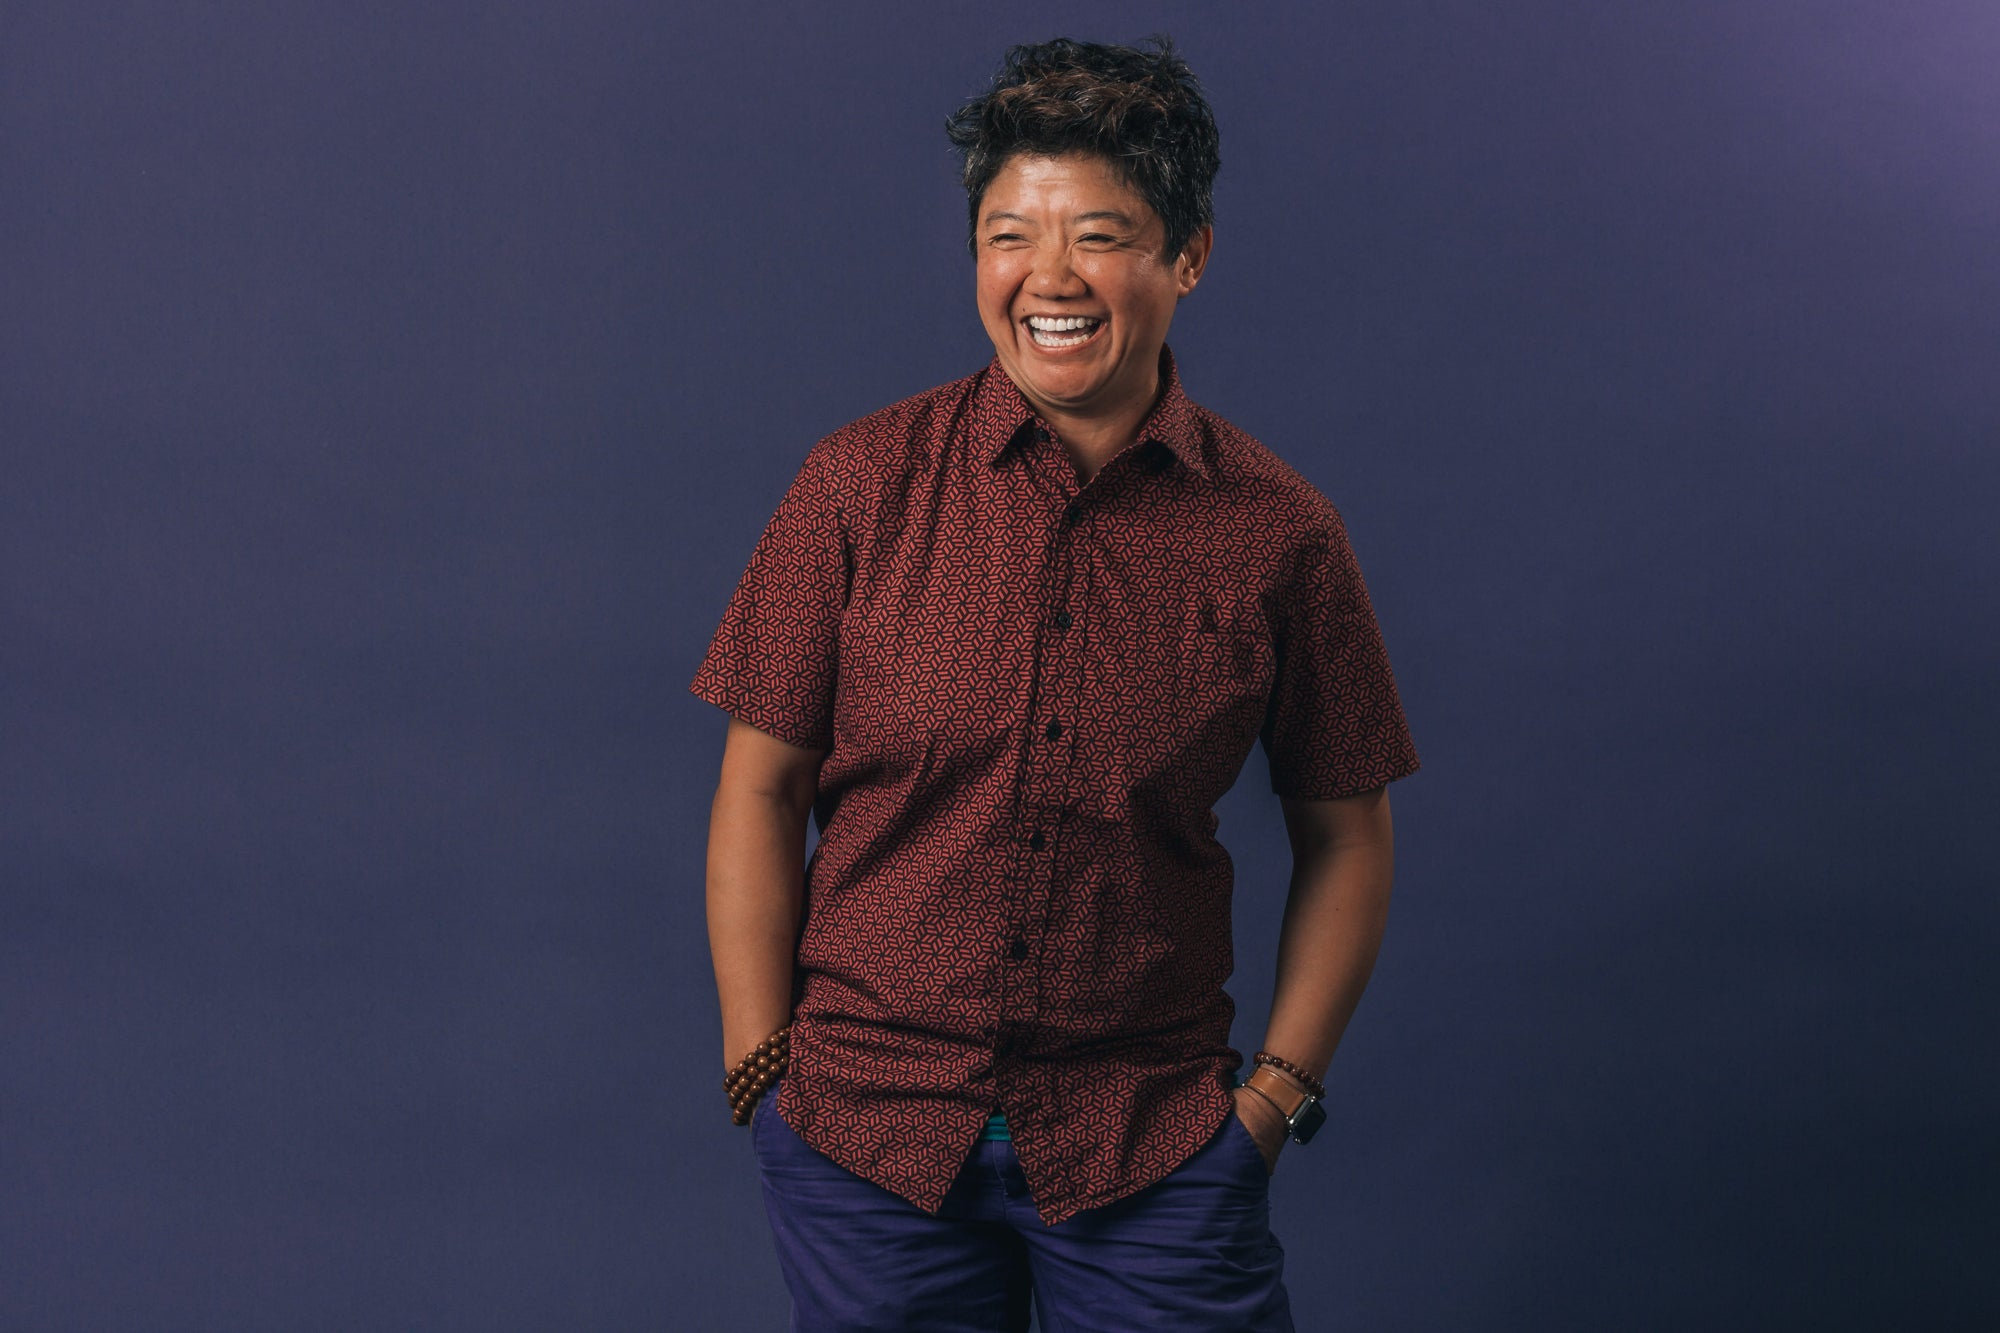 Portrait of a person laughing and standing in front of a dark blue background